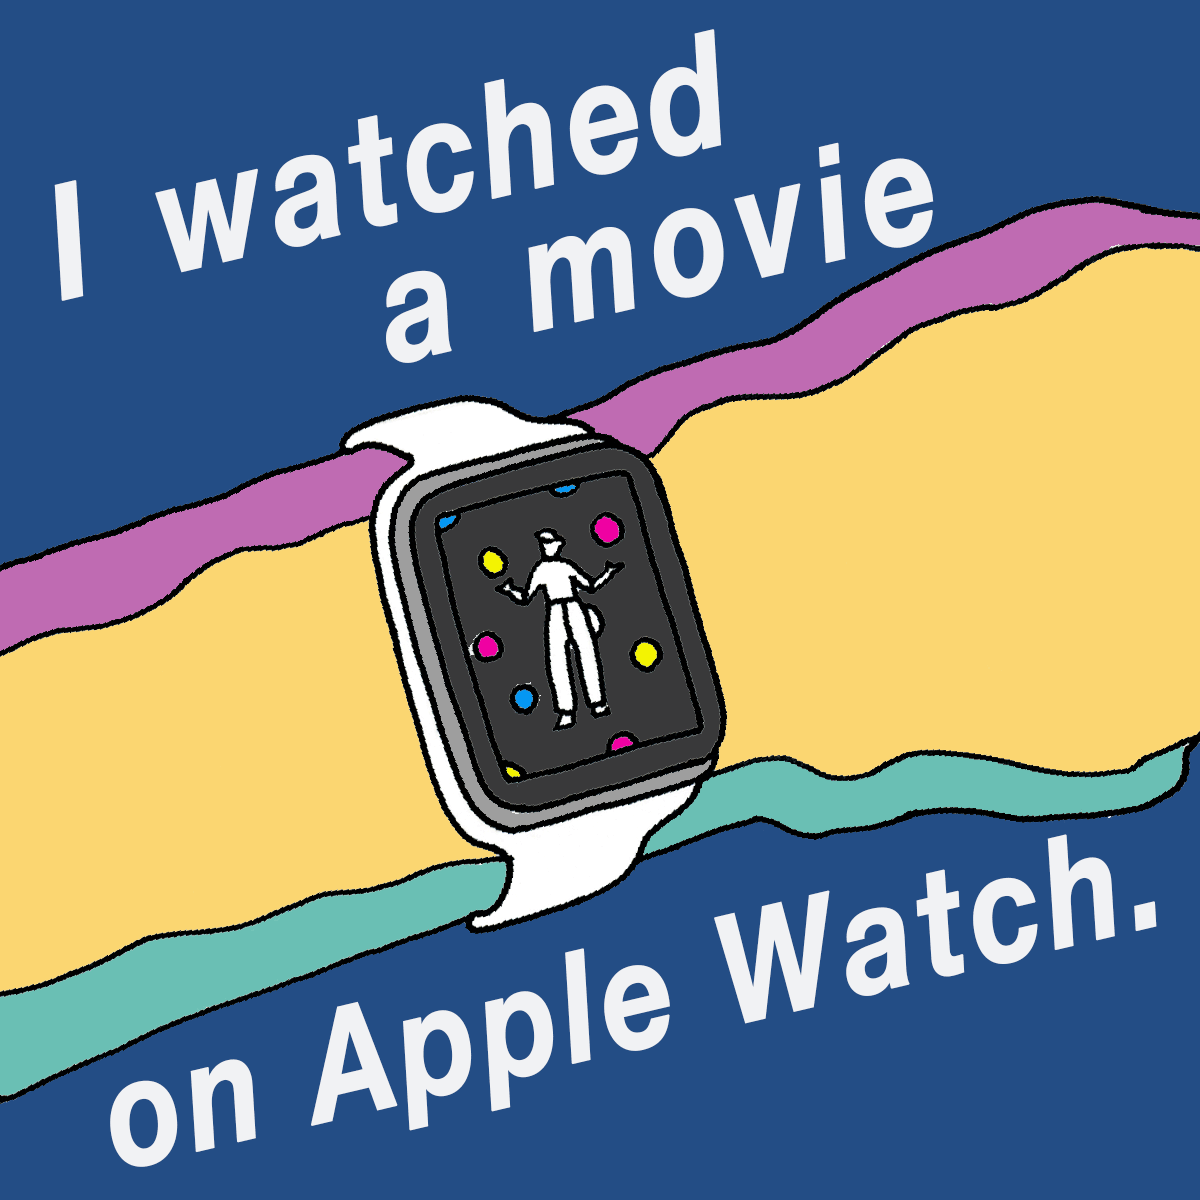 「Apple Watch」から学ぶ<br>I watched a movie on Apple Watch.